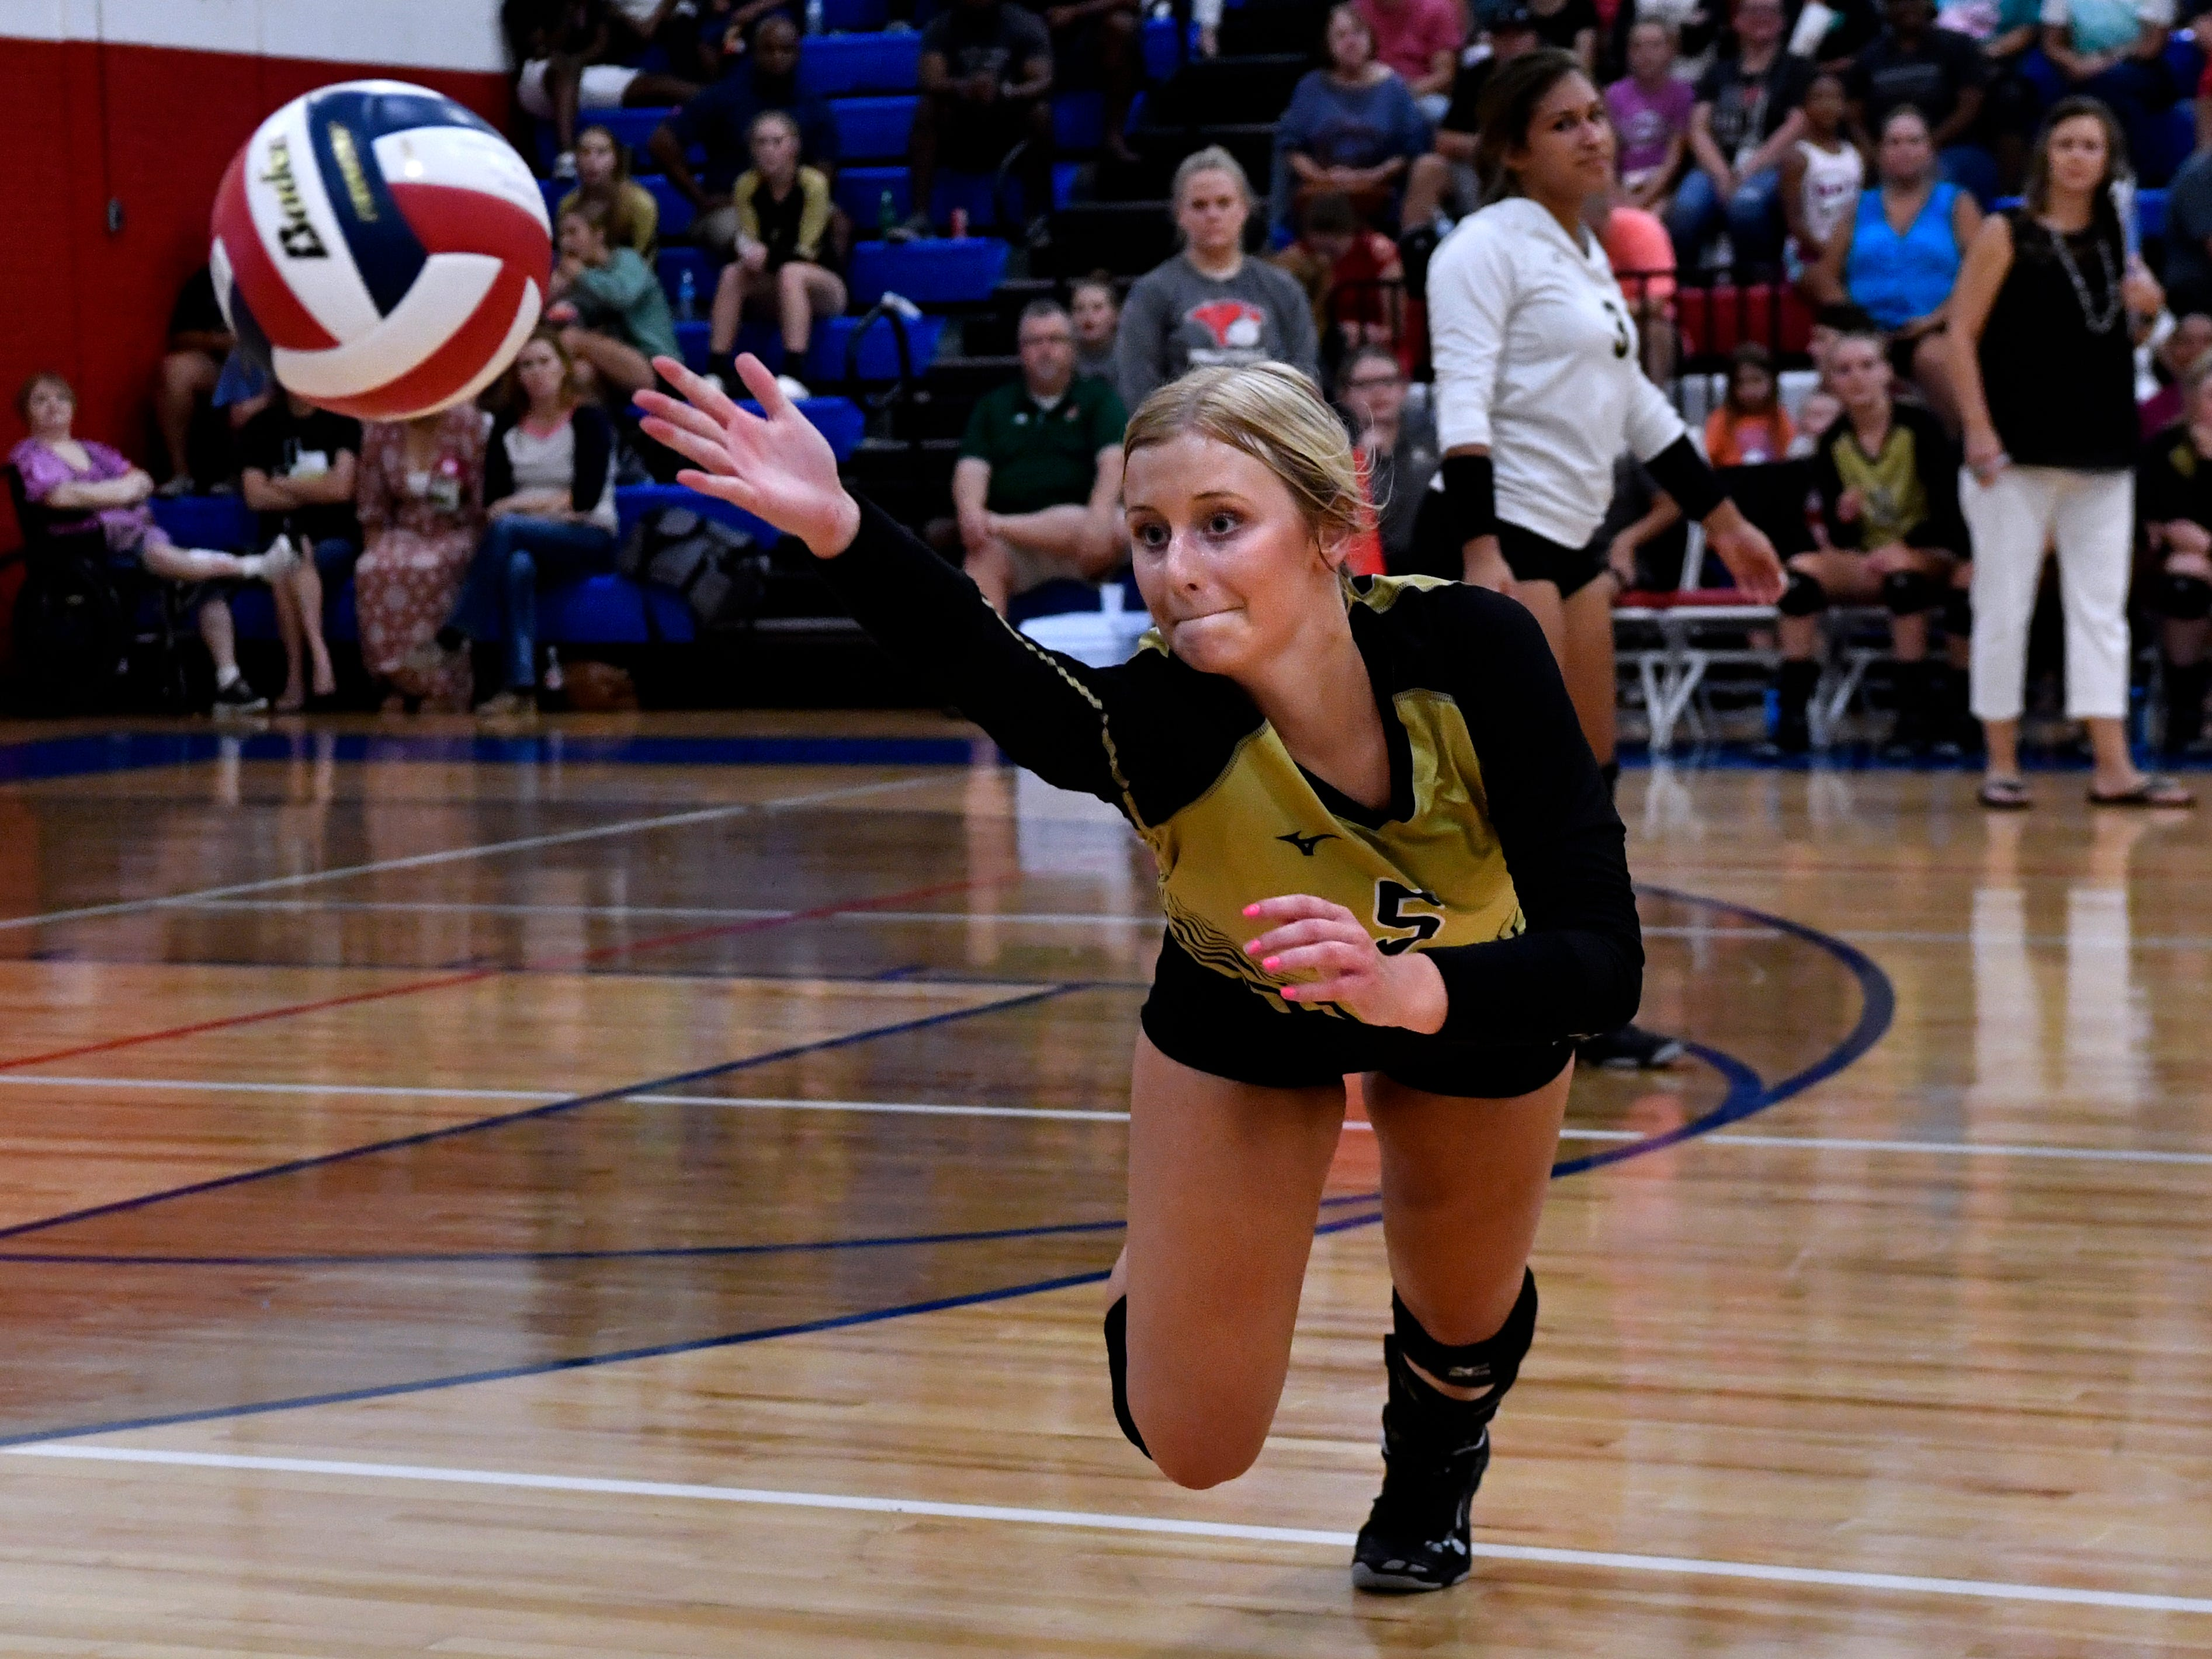 Abilene High's Allison Pierce dives for the ball as it flies out-of-bounds during the Lady Eagles crosstown game against Cooper High School Tuesday August 7, 2018 at Cooper. Abilene beat the Lady Coogs in the best-of-five match, 25-21, 16-25, 25-20, 17-25, 15-7.